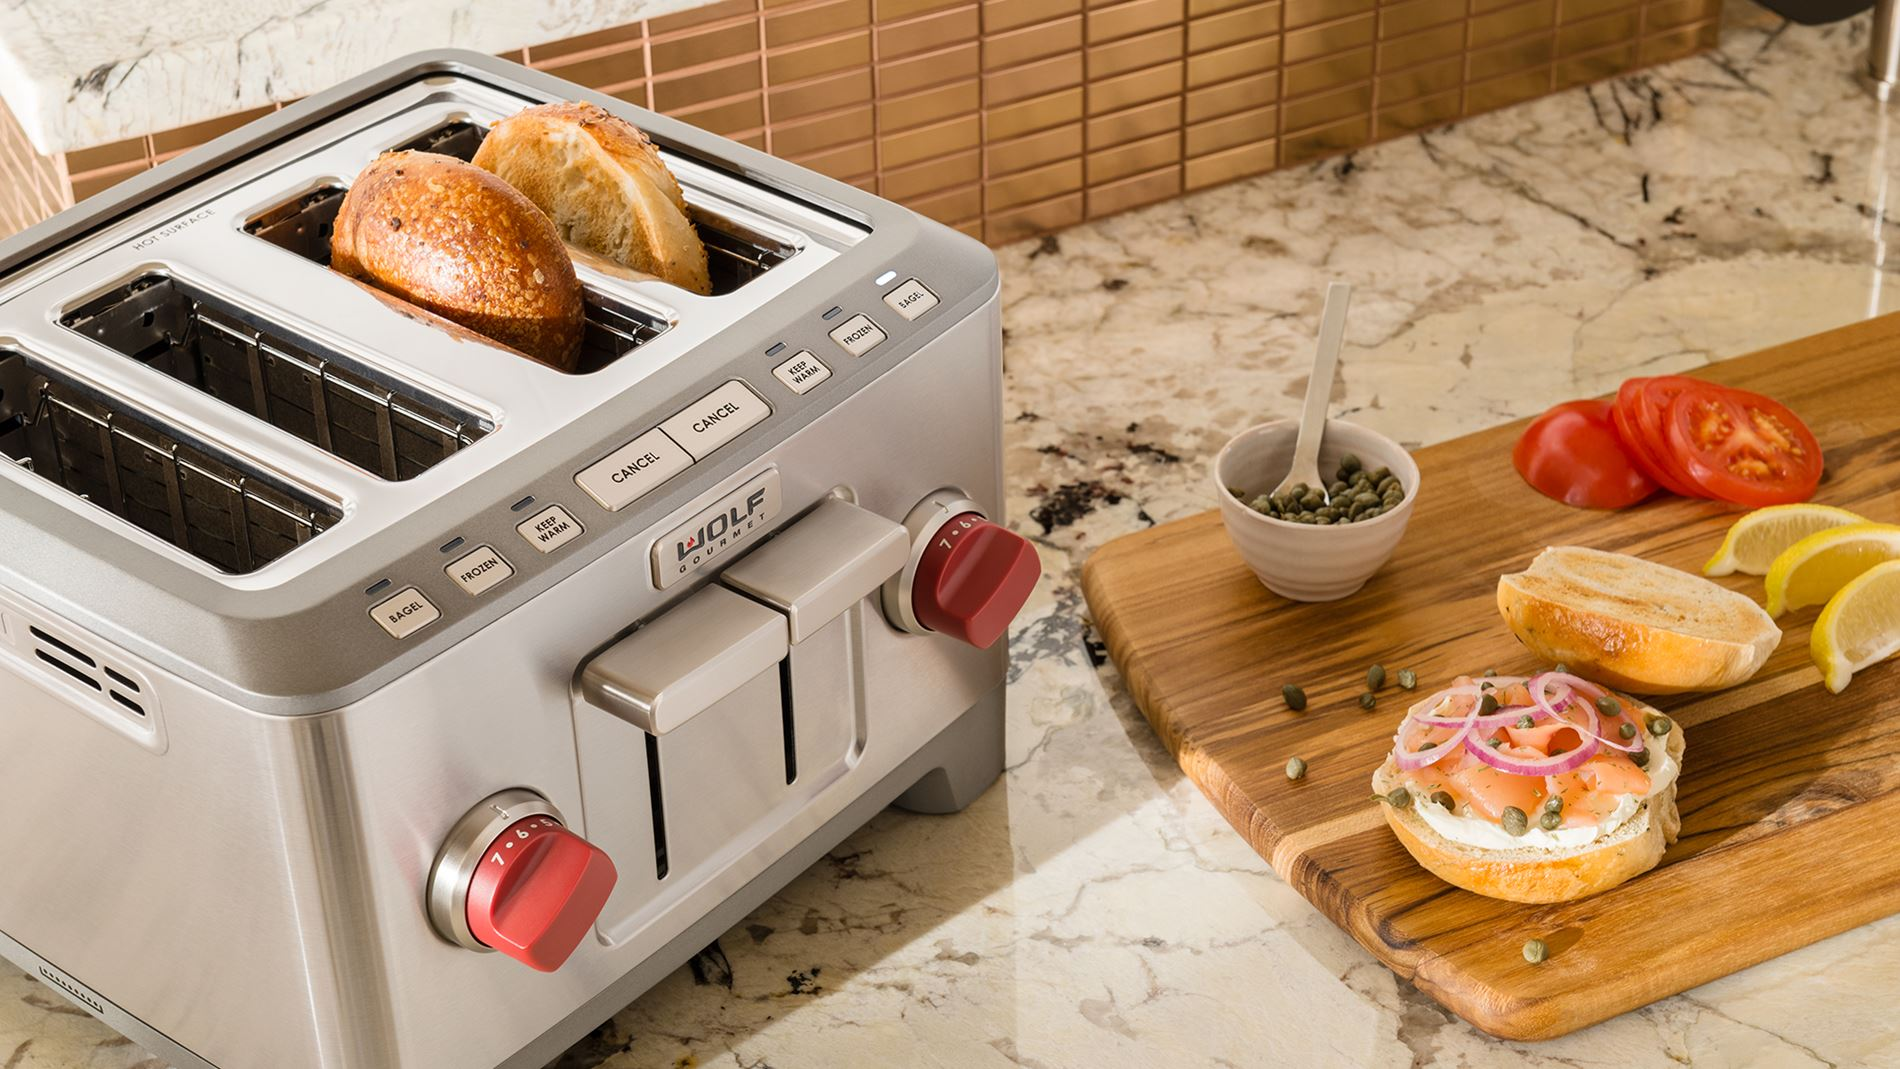 wgtr104s-4slice-toaster-kitchenfood.jpg